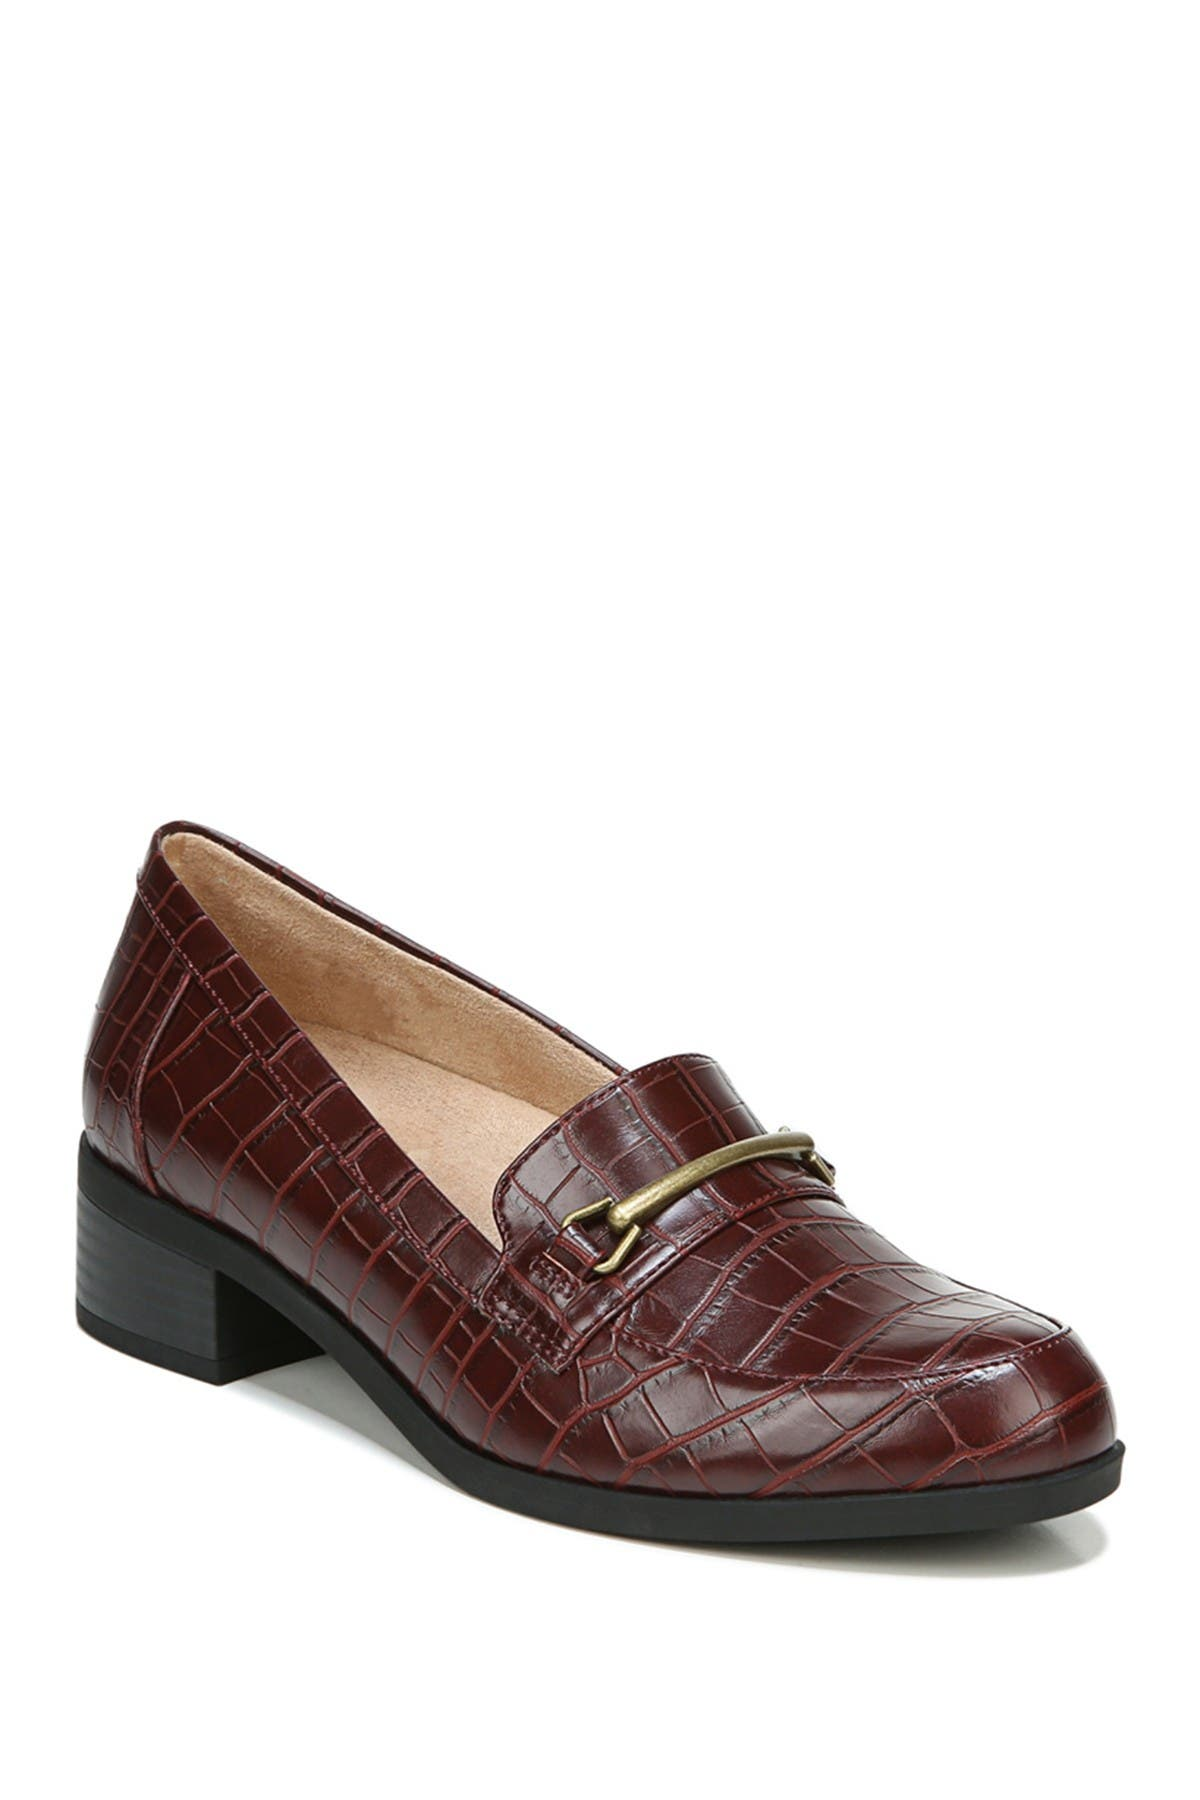 Image of SOUL Naturalizer Firstly Croc Embossed Loafer - Wide Width Available